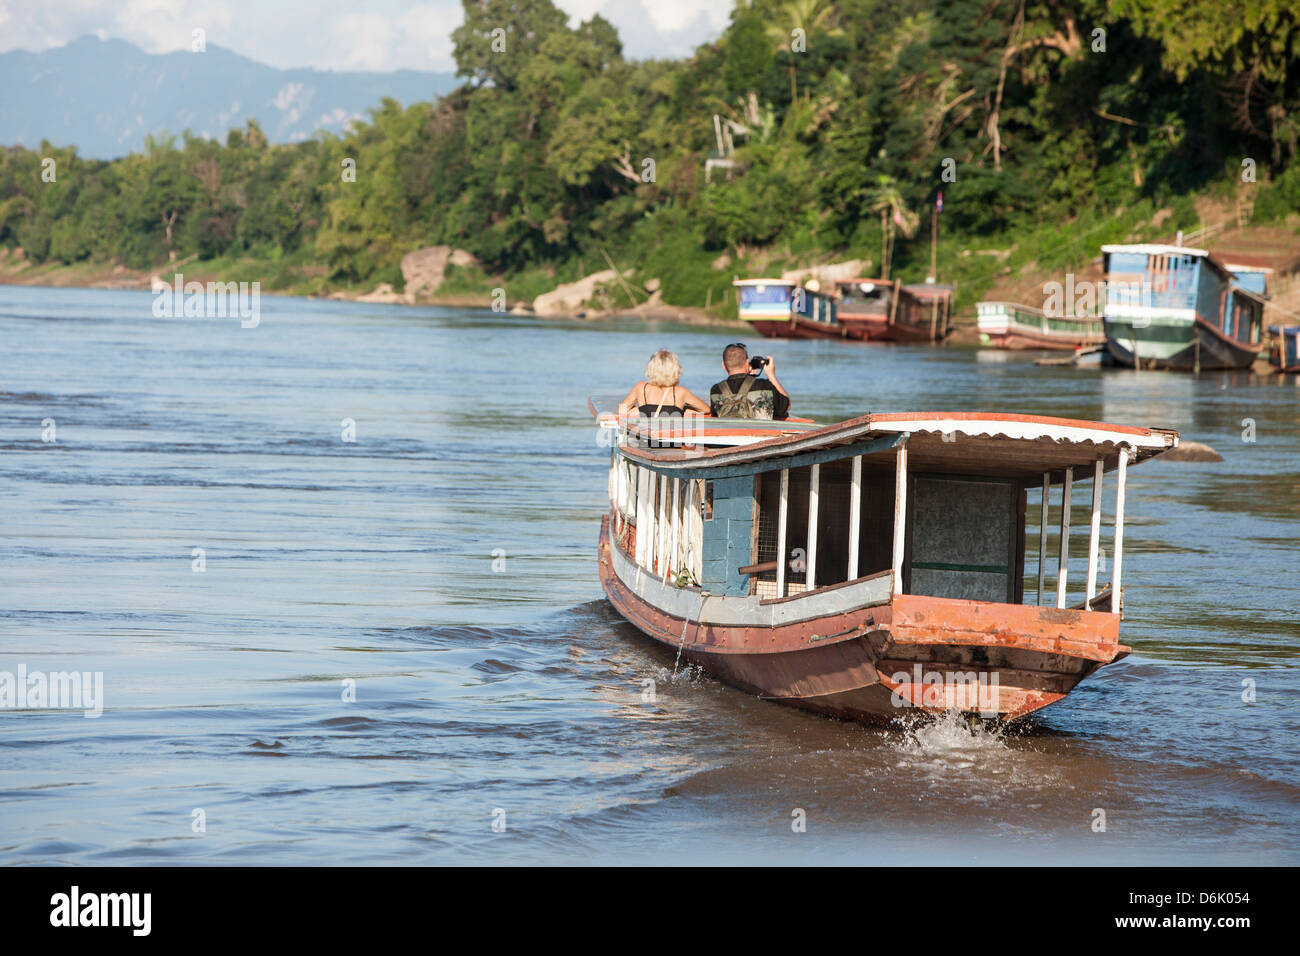 Boat trip on Mekong River, Luang Prabang, Laos, Indochina, Southeast Asia, Asia - Stock Image